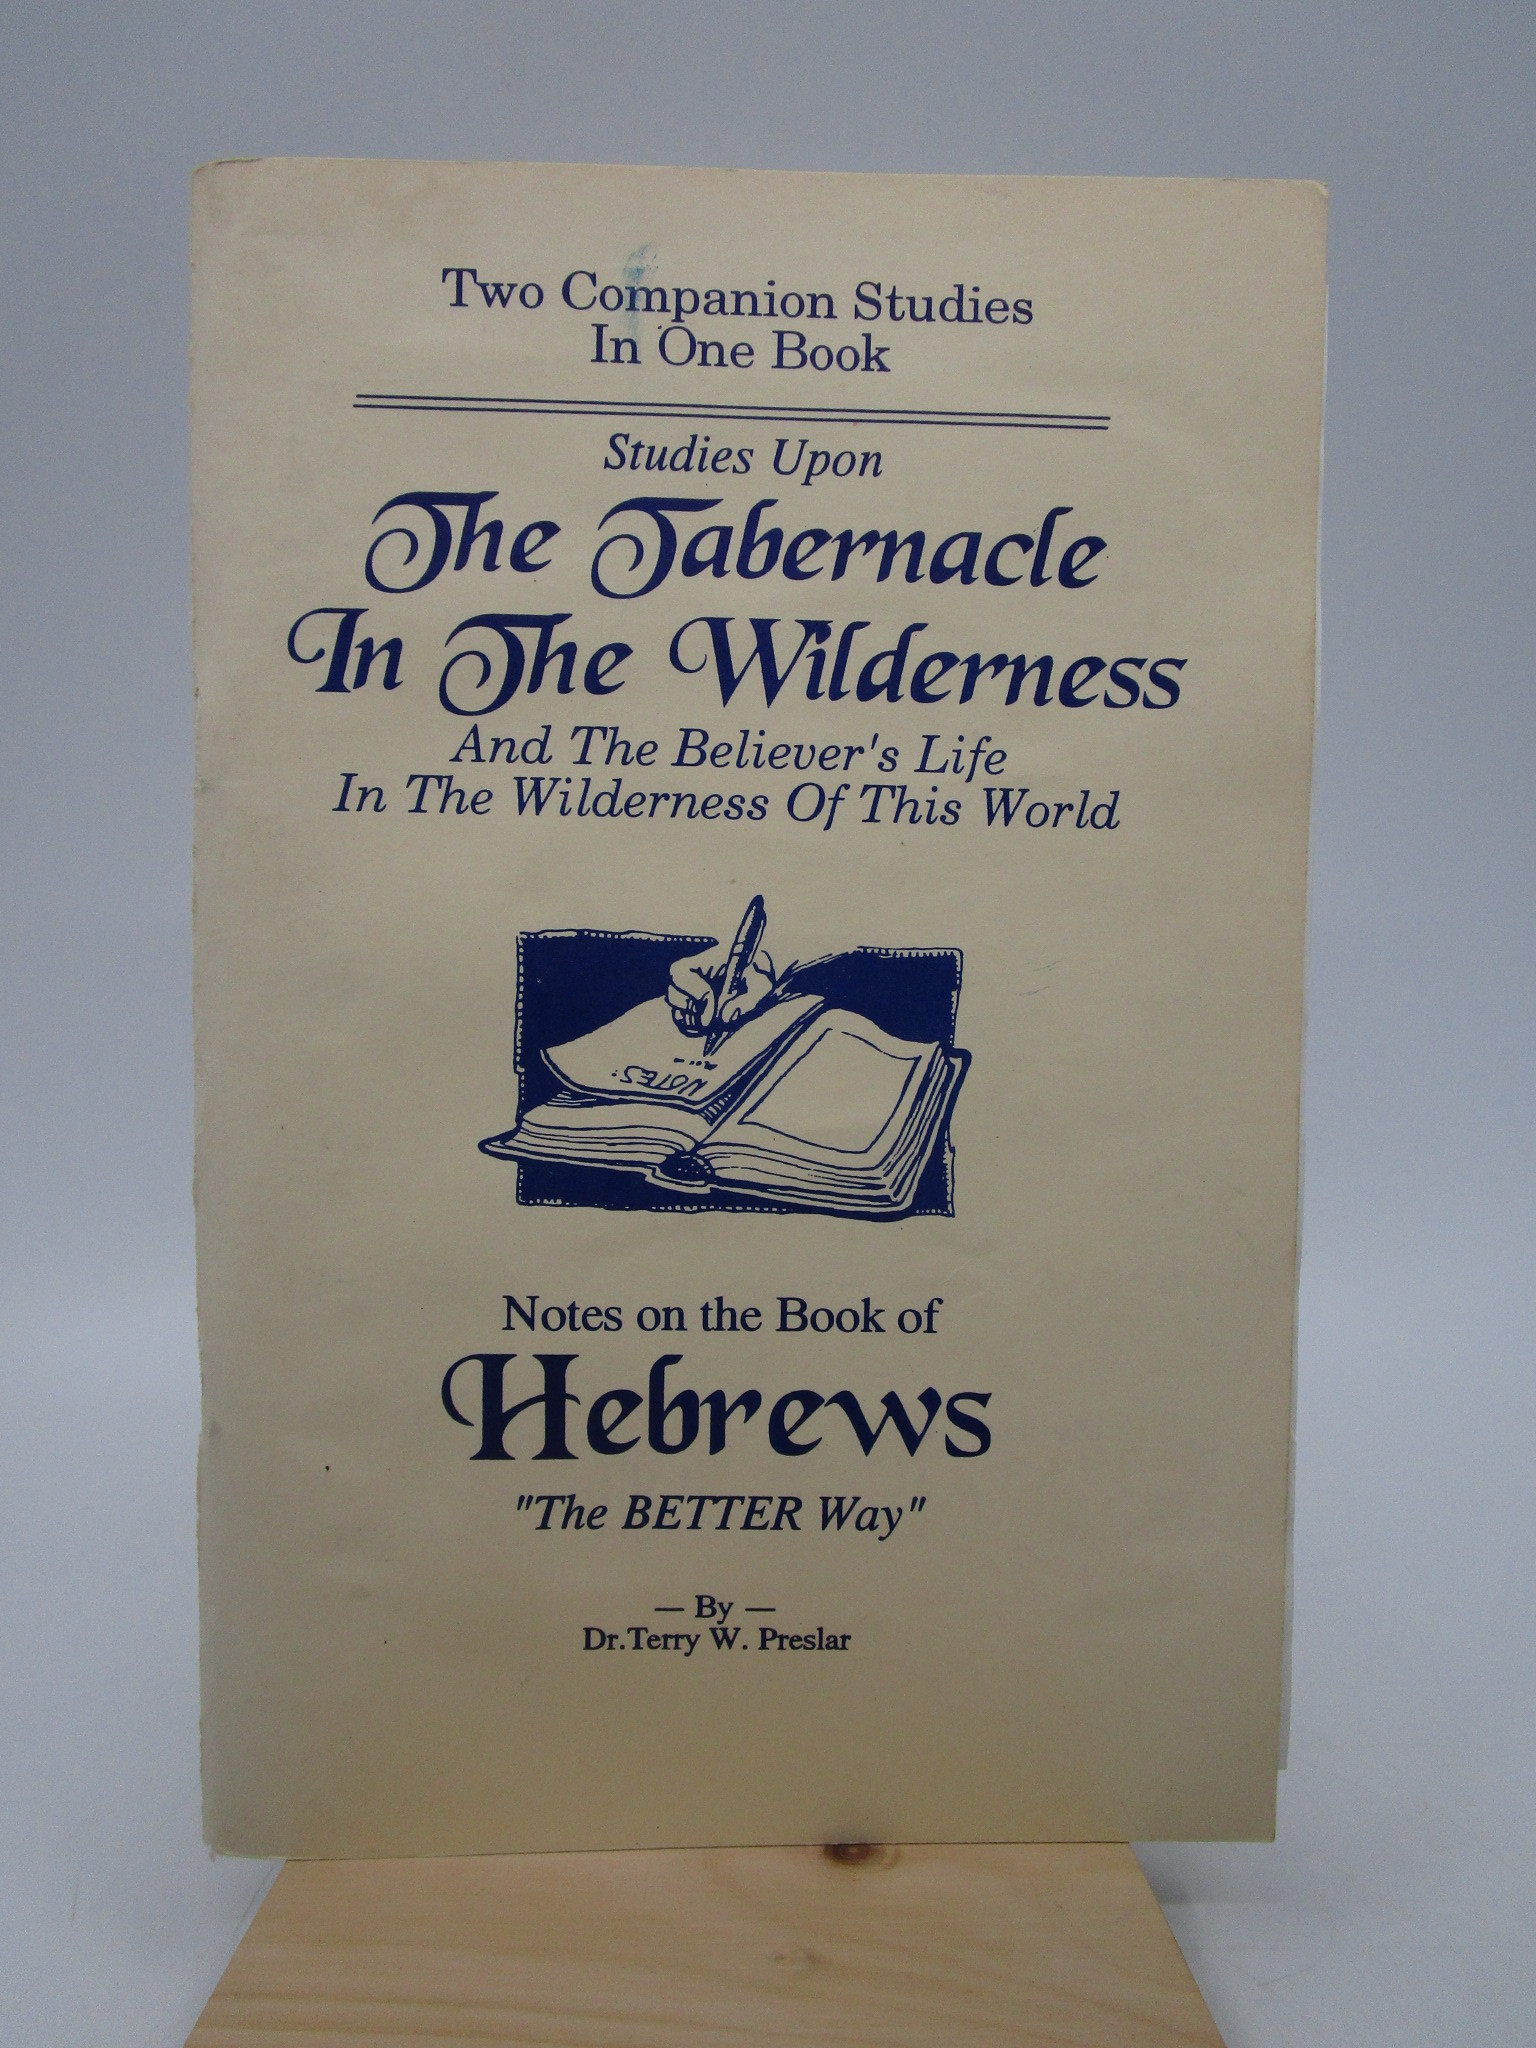 "Image for Studies Upon The Tabernacle in the Wilderness and the Believer's Life in the Wilderness of This World / Notes on the Book of Hebrews ""The Better Way"" (Two Companion Studies in One Book)"